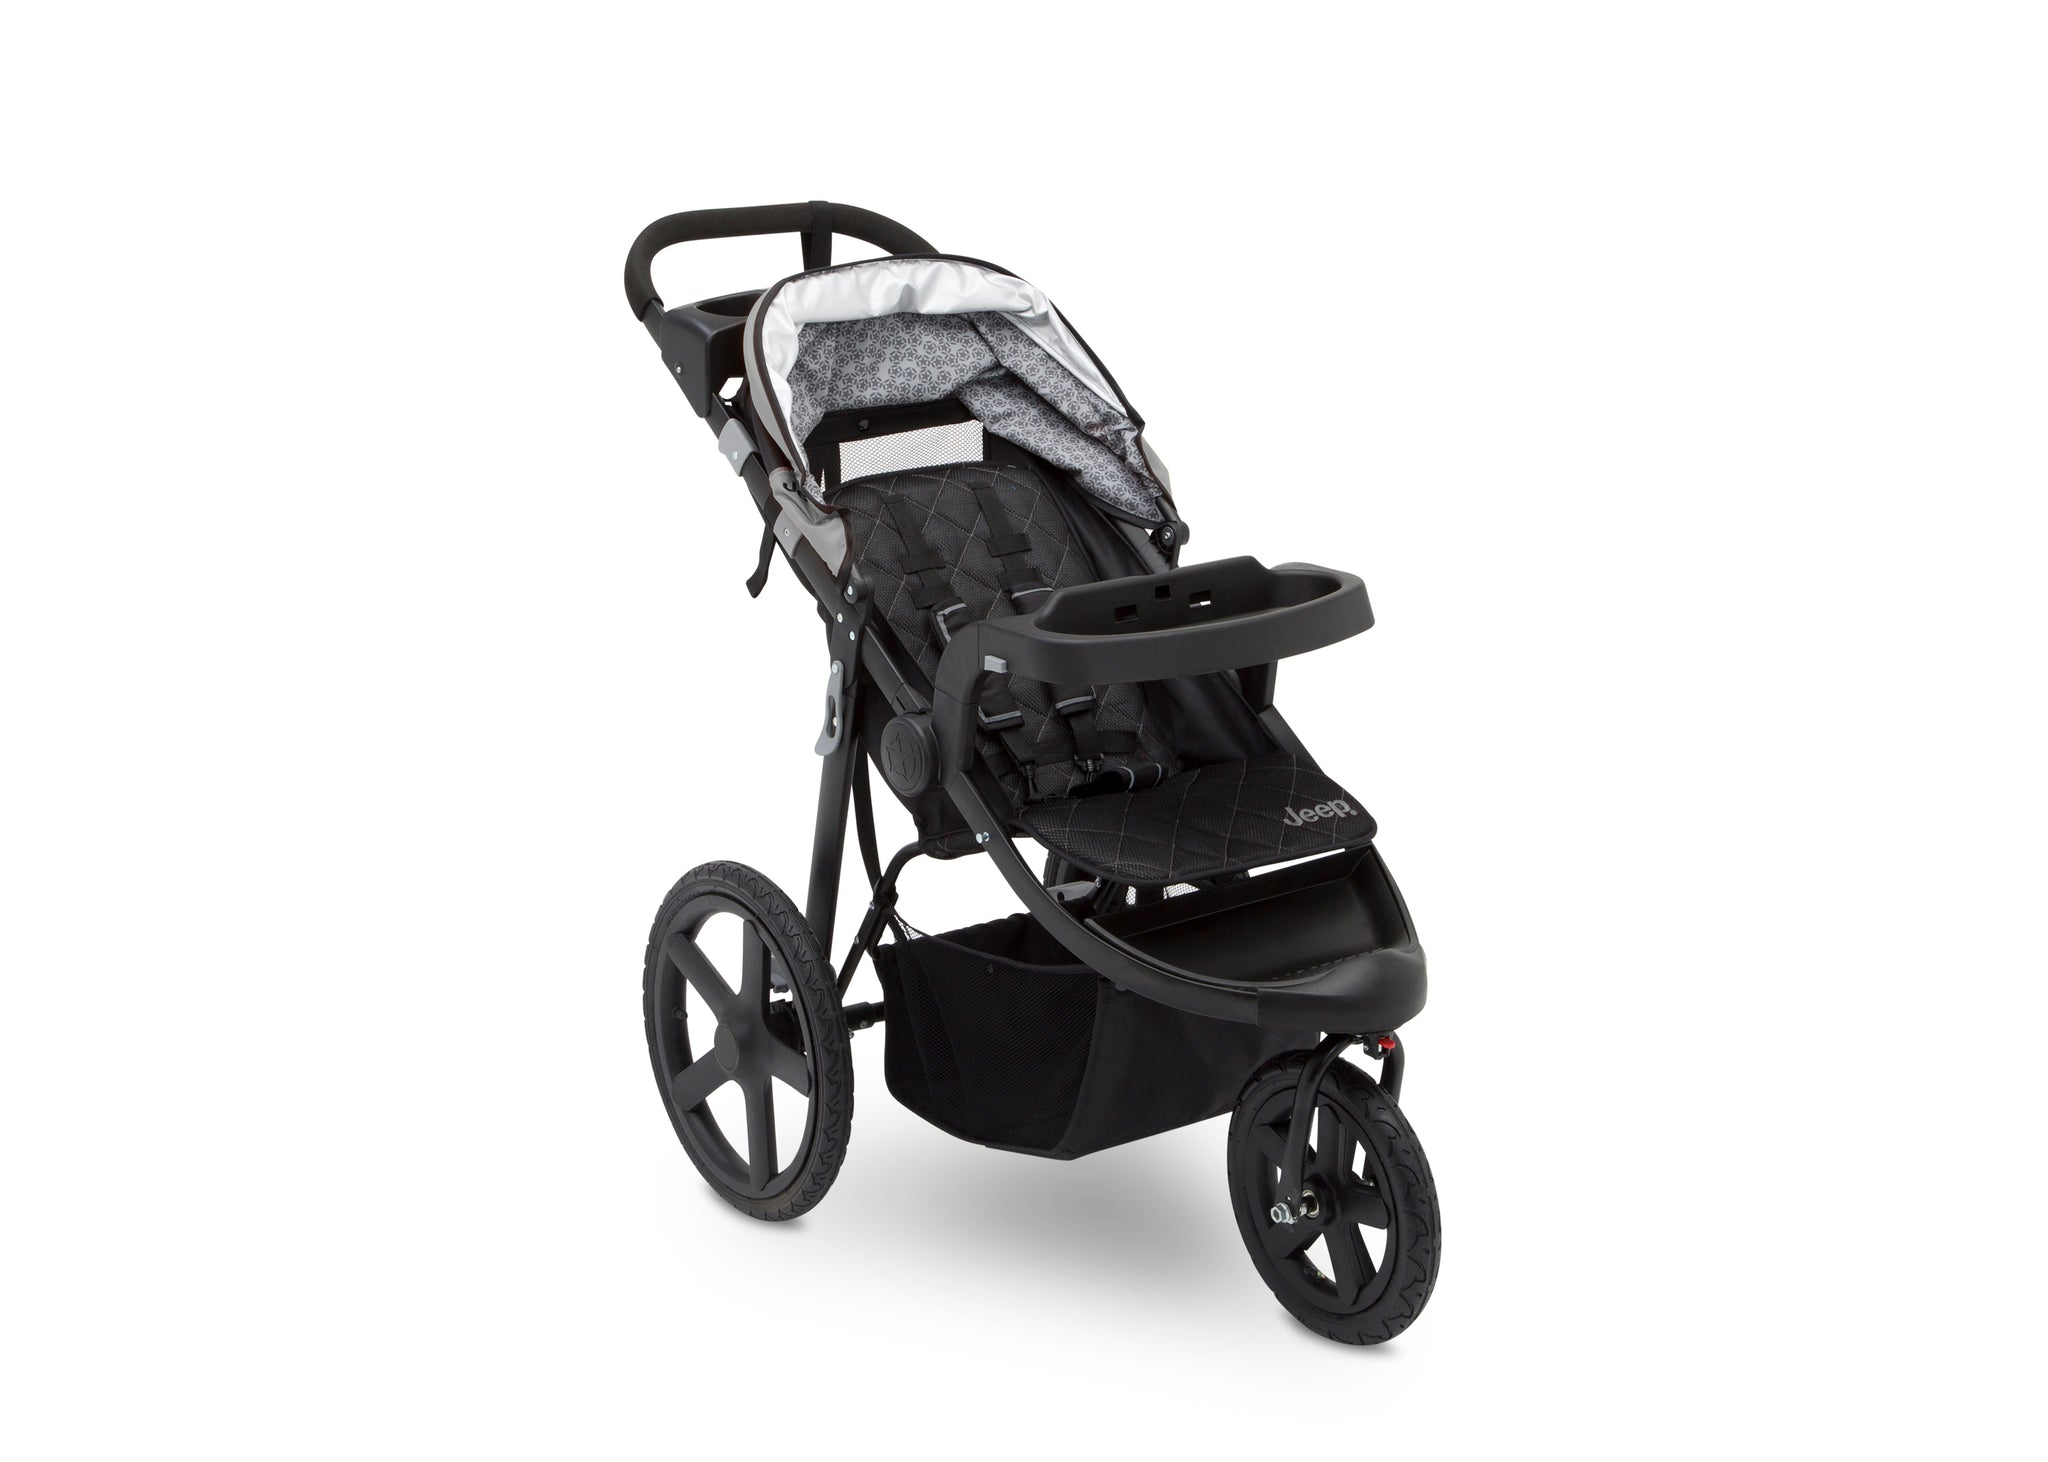 Jeep Adventure All Terrain Jogger Stroller by Delta Children, Charcoal Tracks (0251), with a child tray